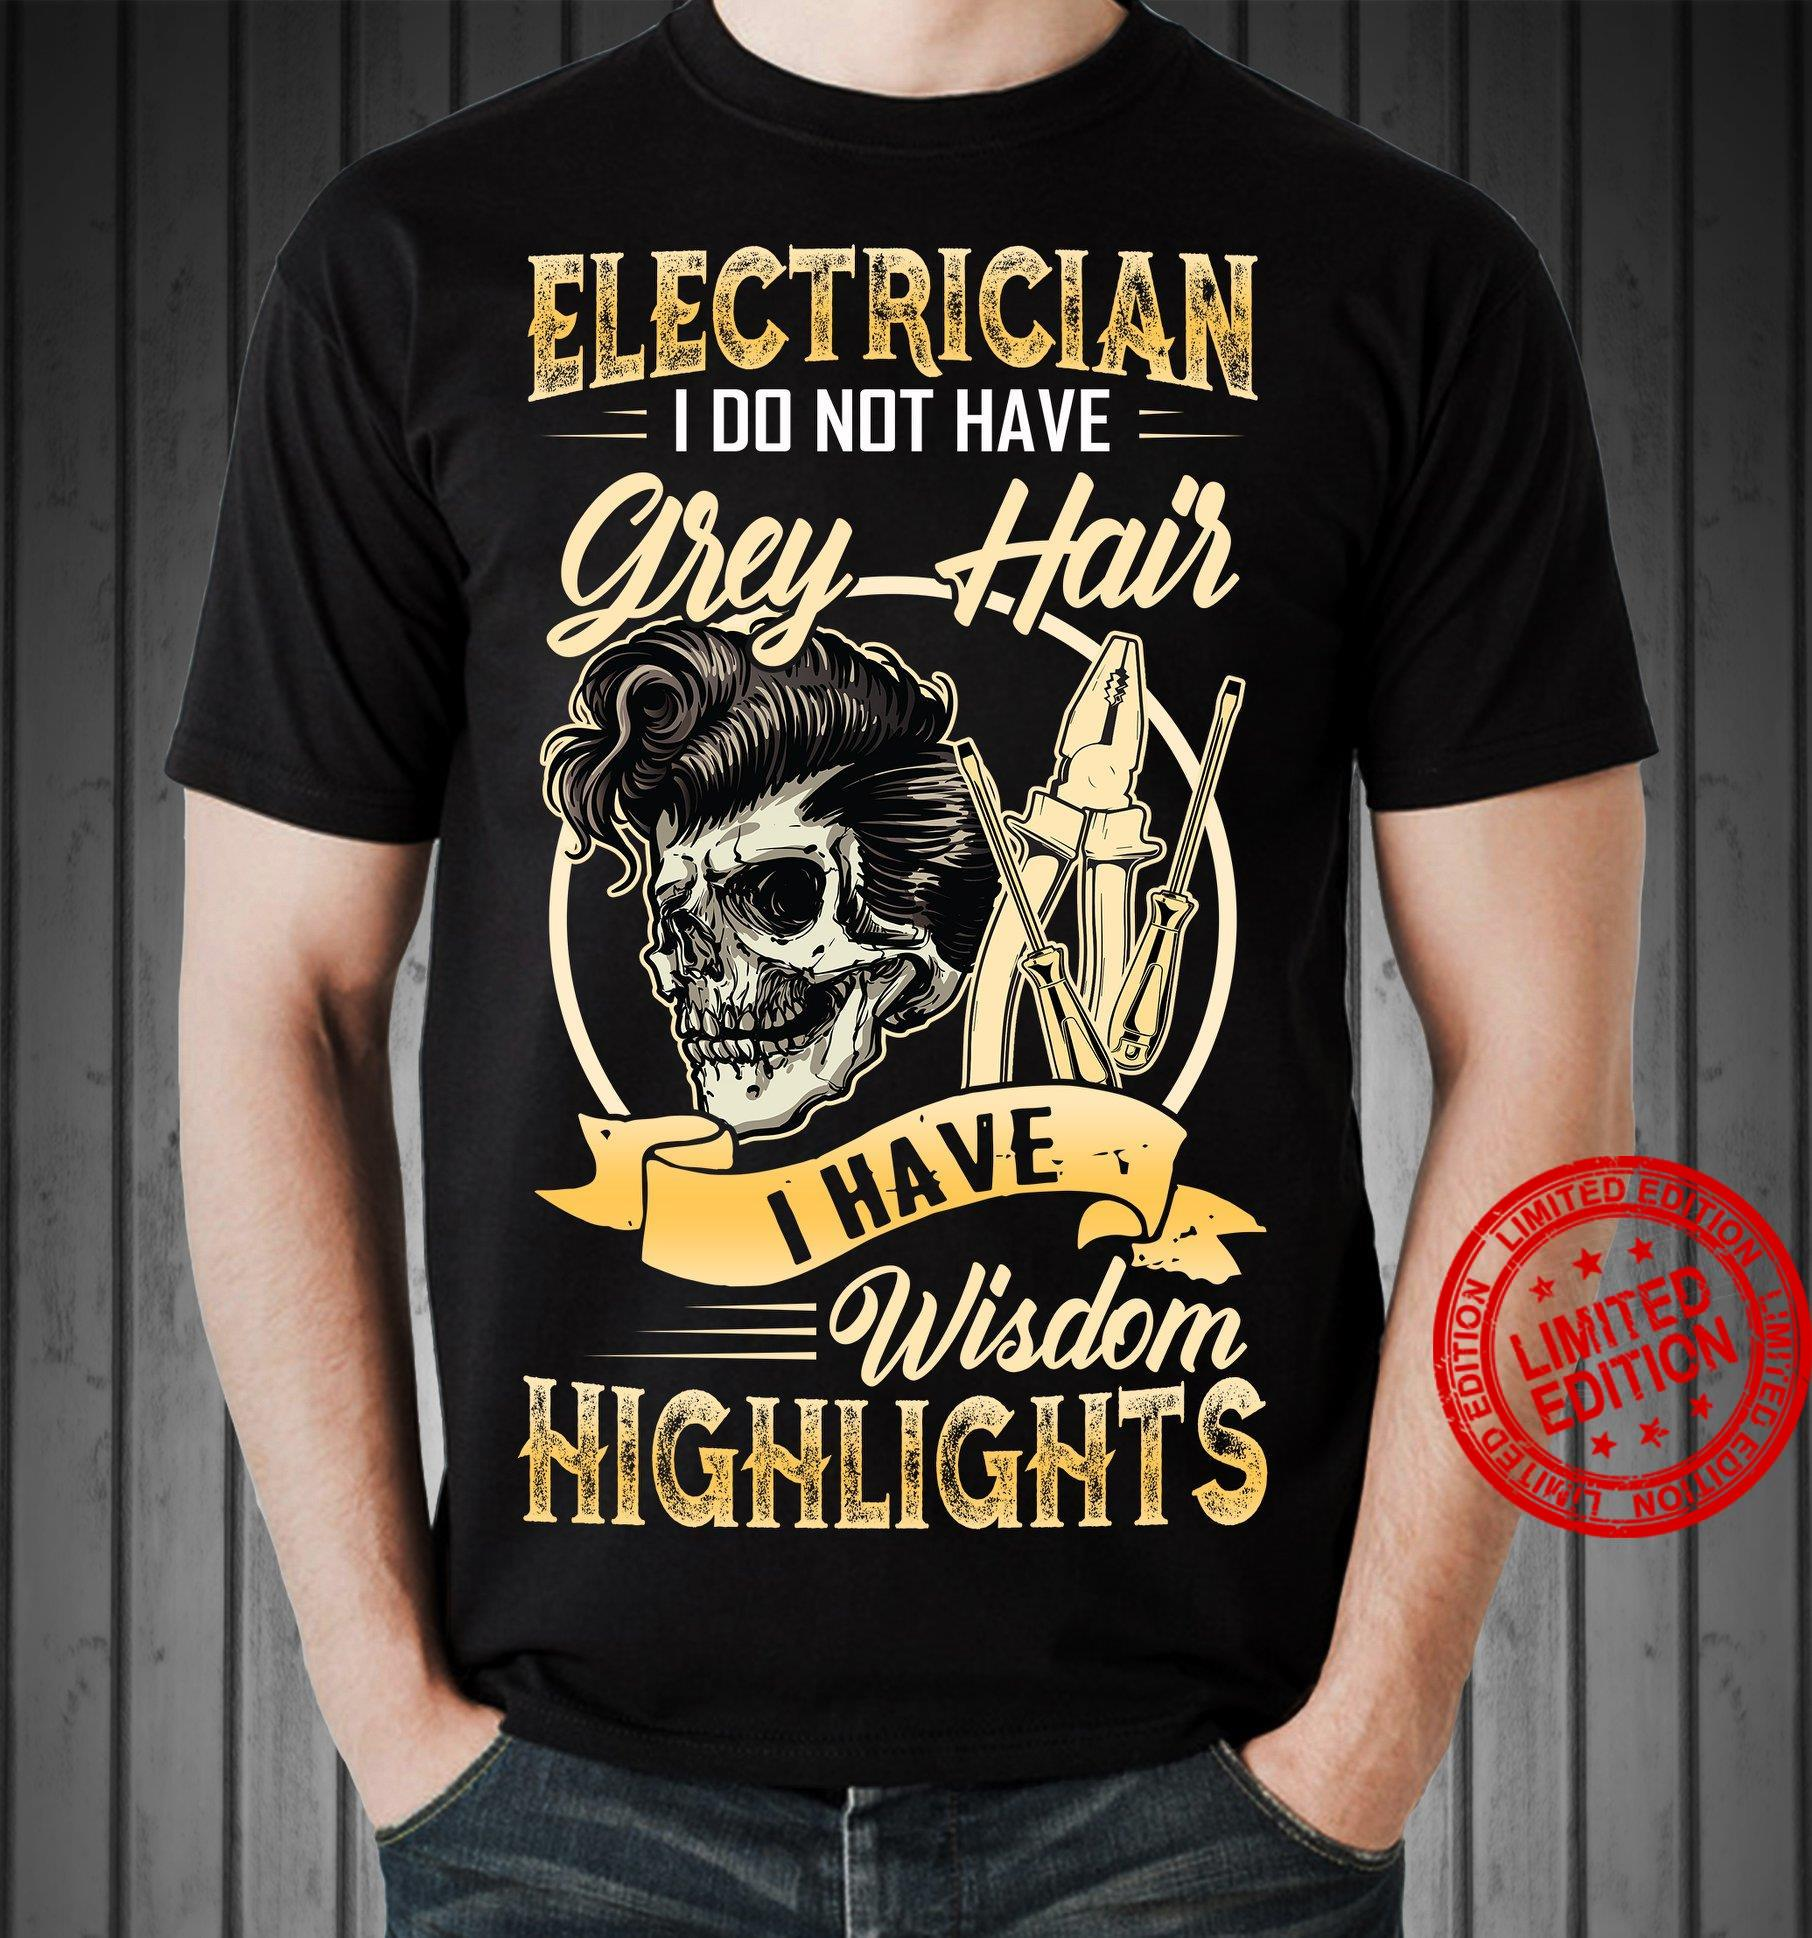 Electrician I Do Not Have Grey Hair I Have Wisdom Highlights Shirt